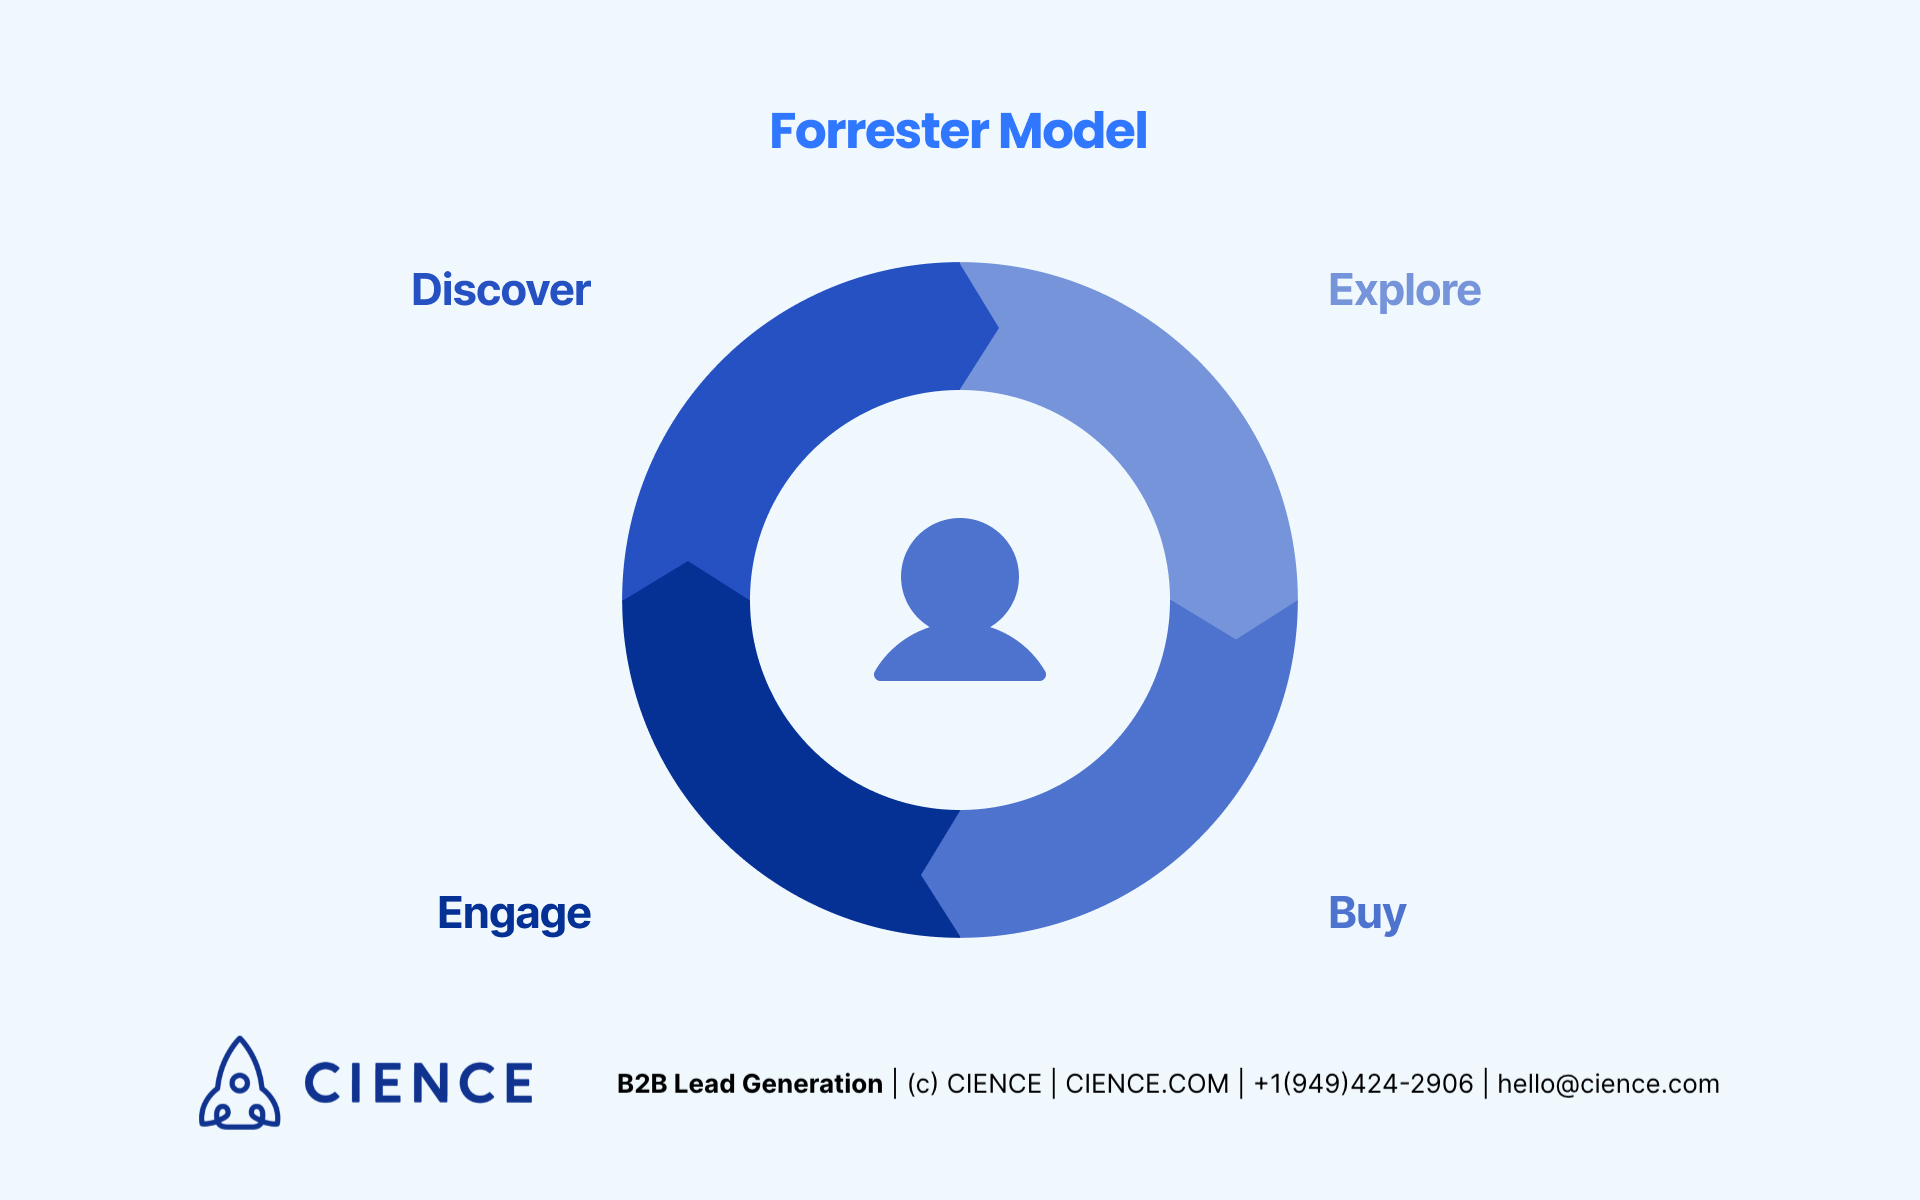 Customer lifecycle in Forrester sales model